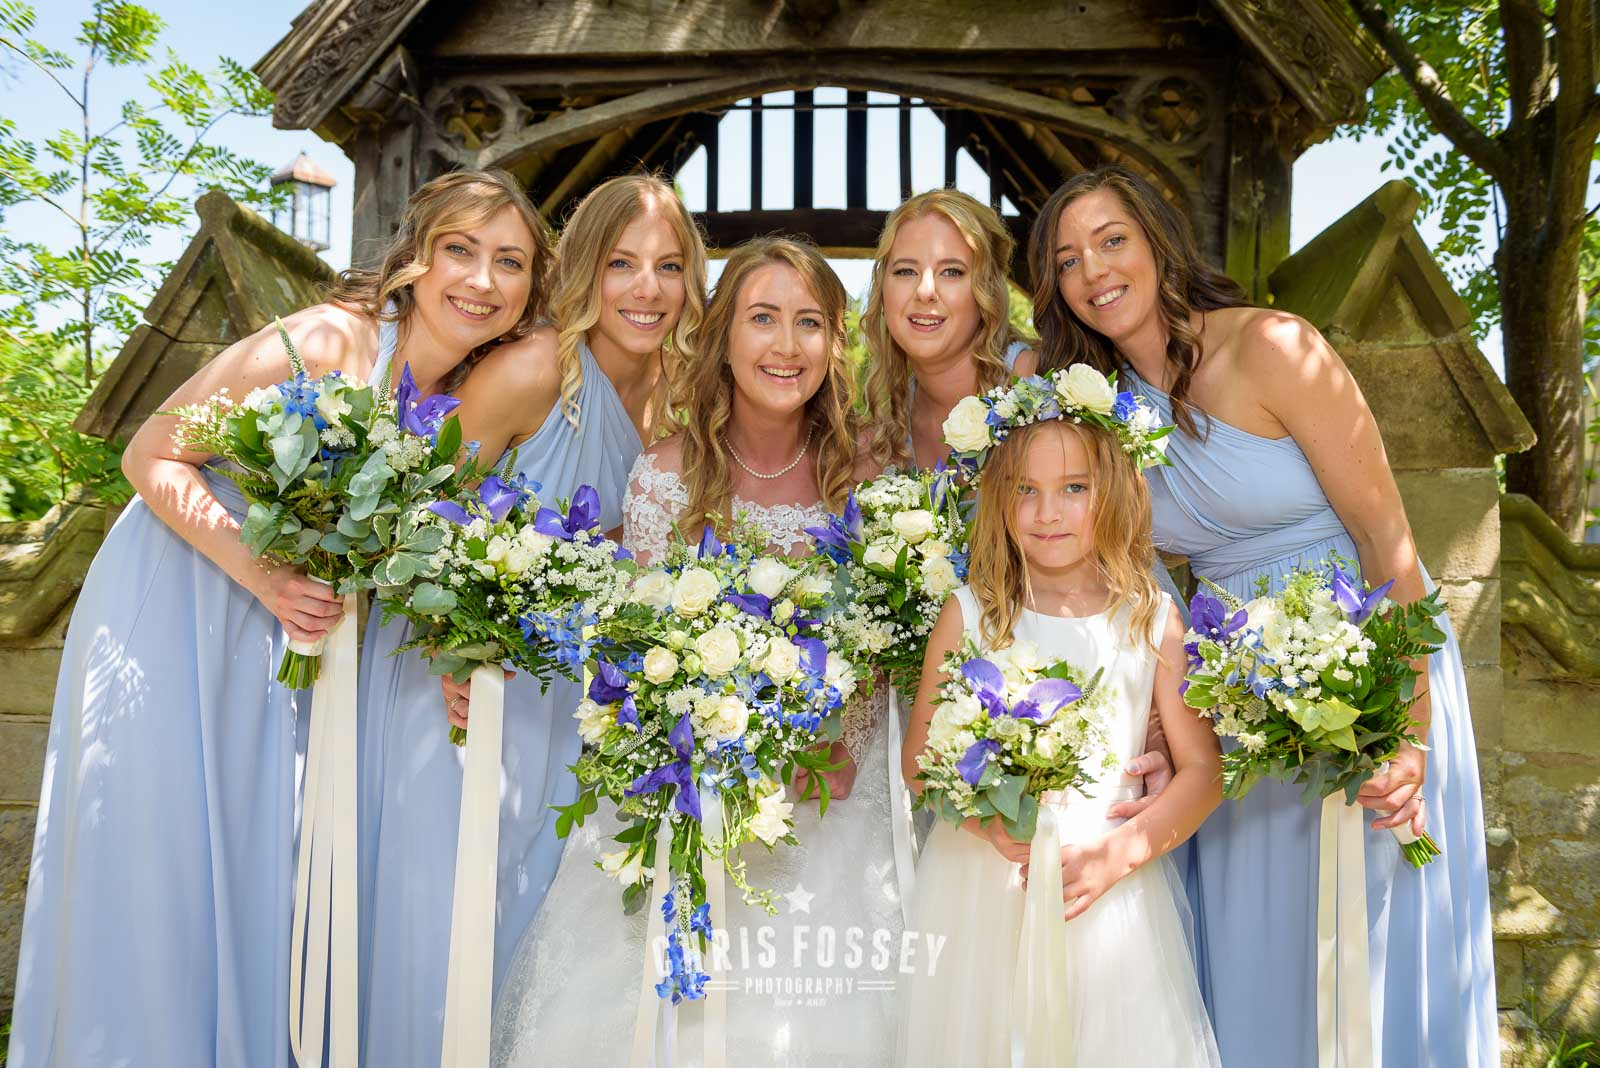 Sherbourne Park Warwick Wedding Photography by Chris Fossey Photography